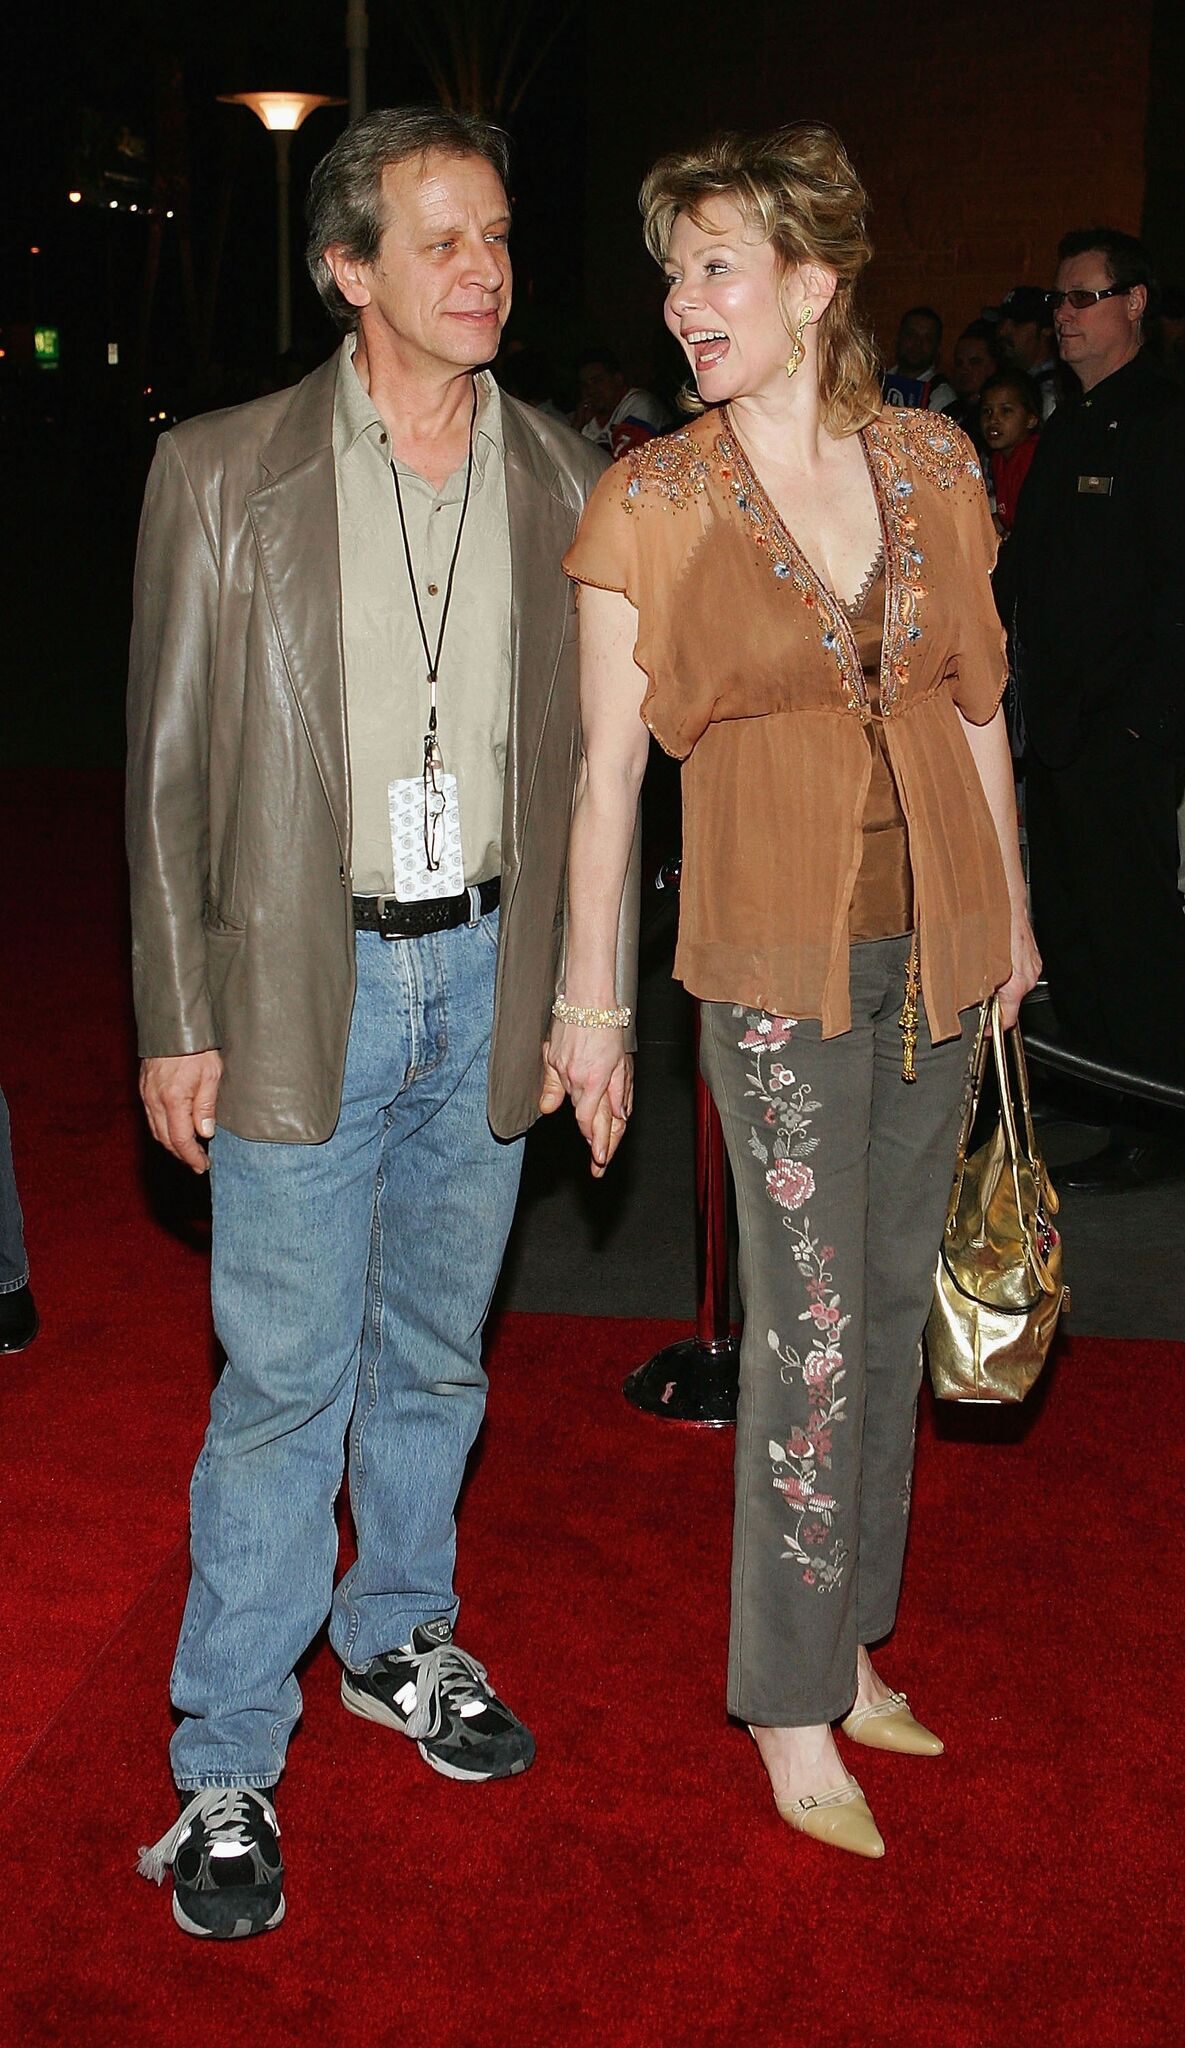 Jean Smart Of Designing Women Fame Has Been Married For 32 Years Here S A Look At Her Marriage Gilliland was born in fort worth, texas. jean smart of designing women fame